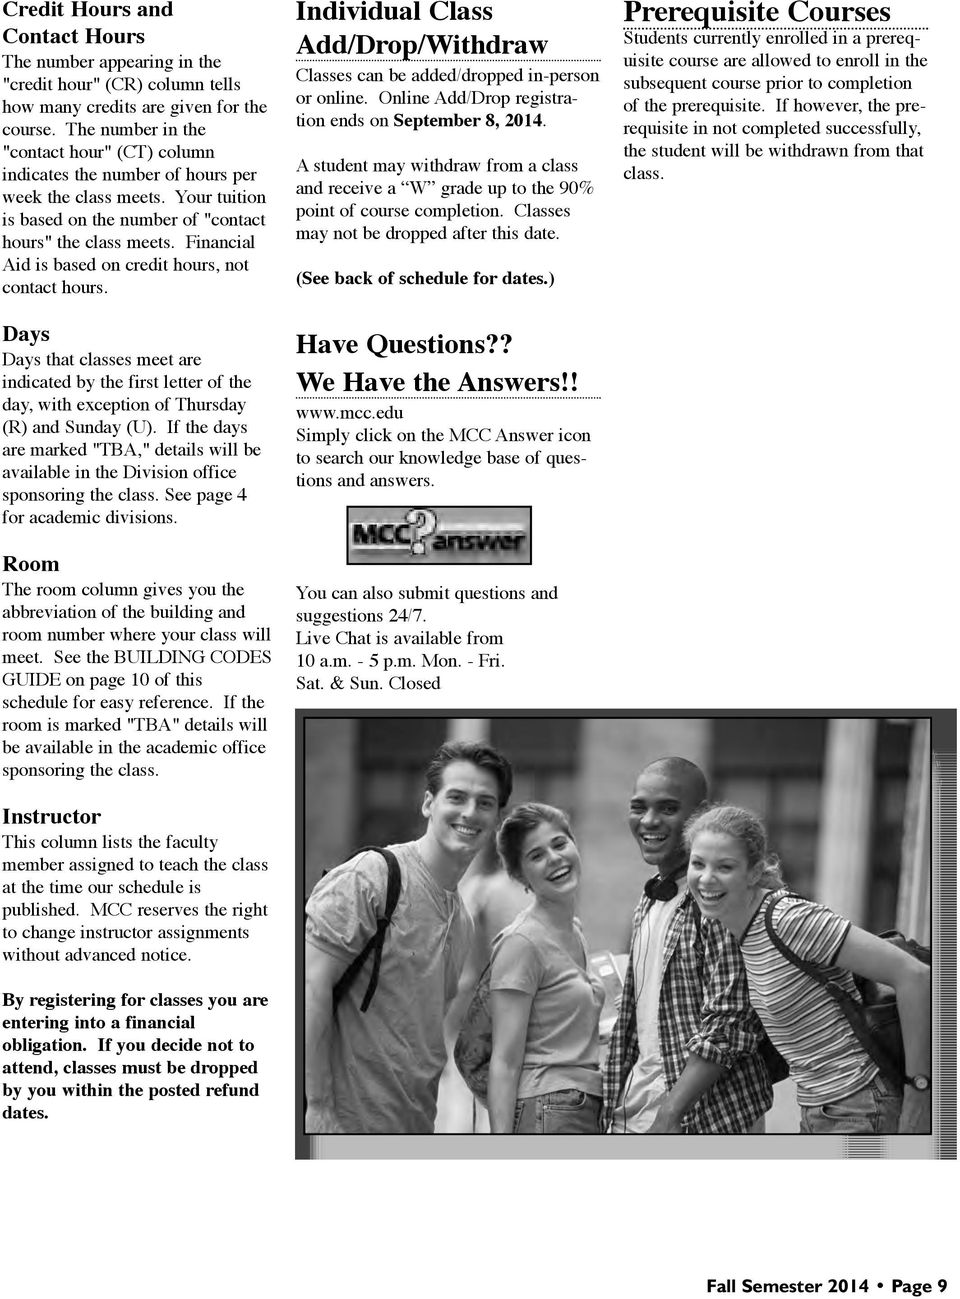 sandhill online dating Rationale sandhill view academy has a critical role  ceiag at sandhill view  this could be through a series of careers talks presented in a 'speed-dating.